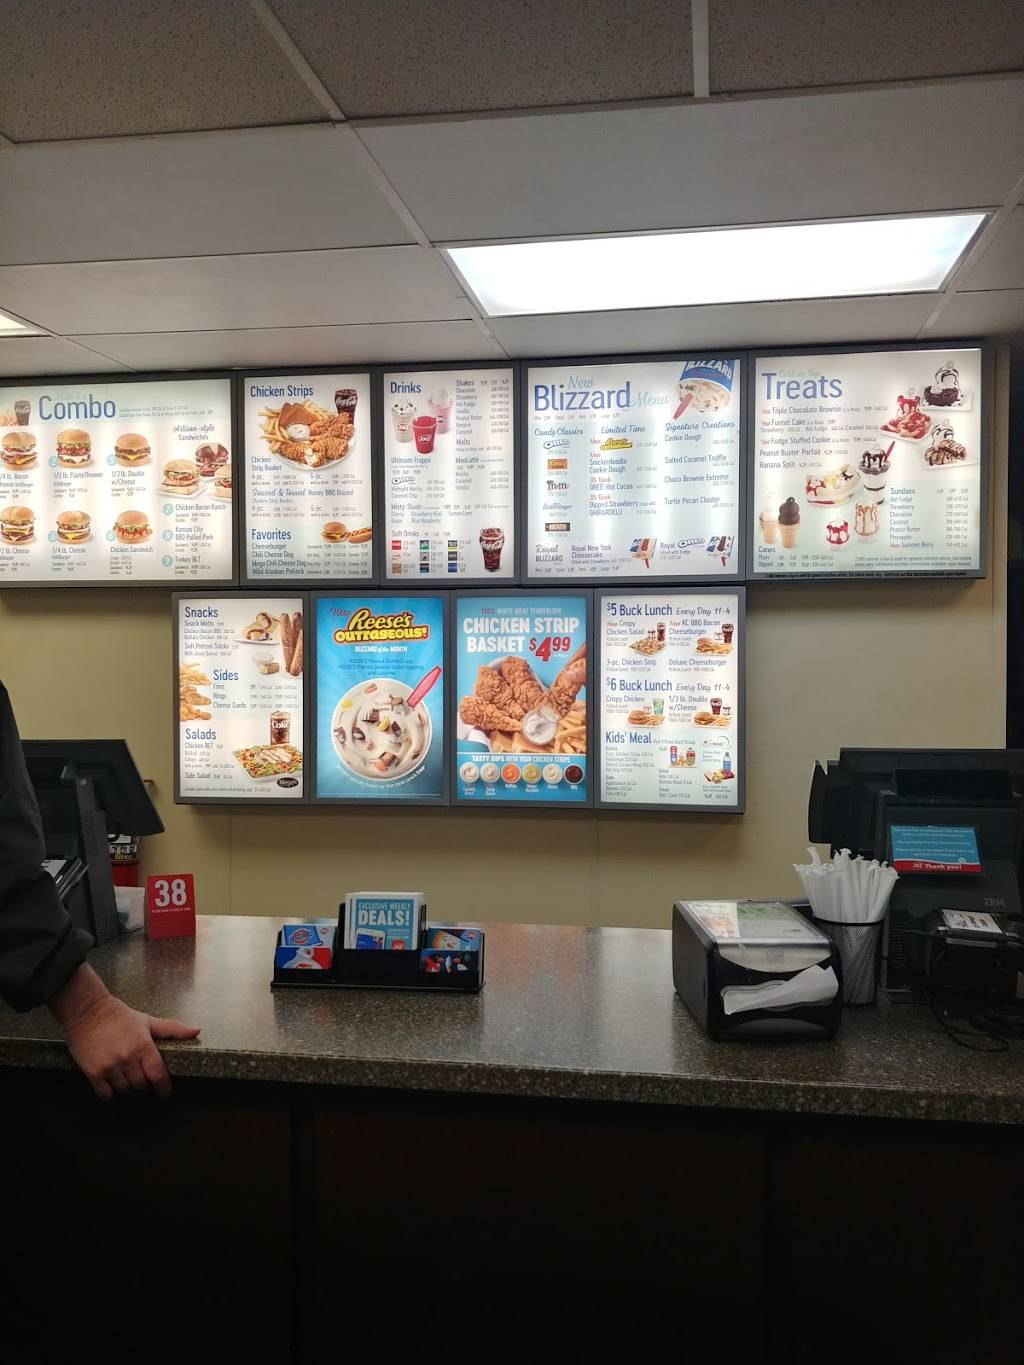 Dairy Queen Grill & Chill | restaurant | 404 N 114th St, Omaha, NE 68154, USA | 4023334623 OR +1 402-333-4623